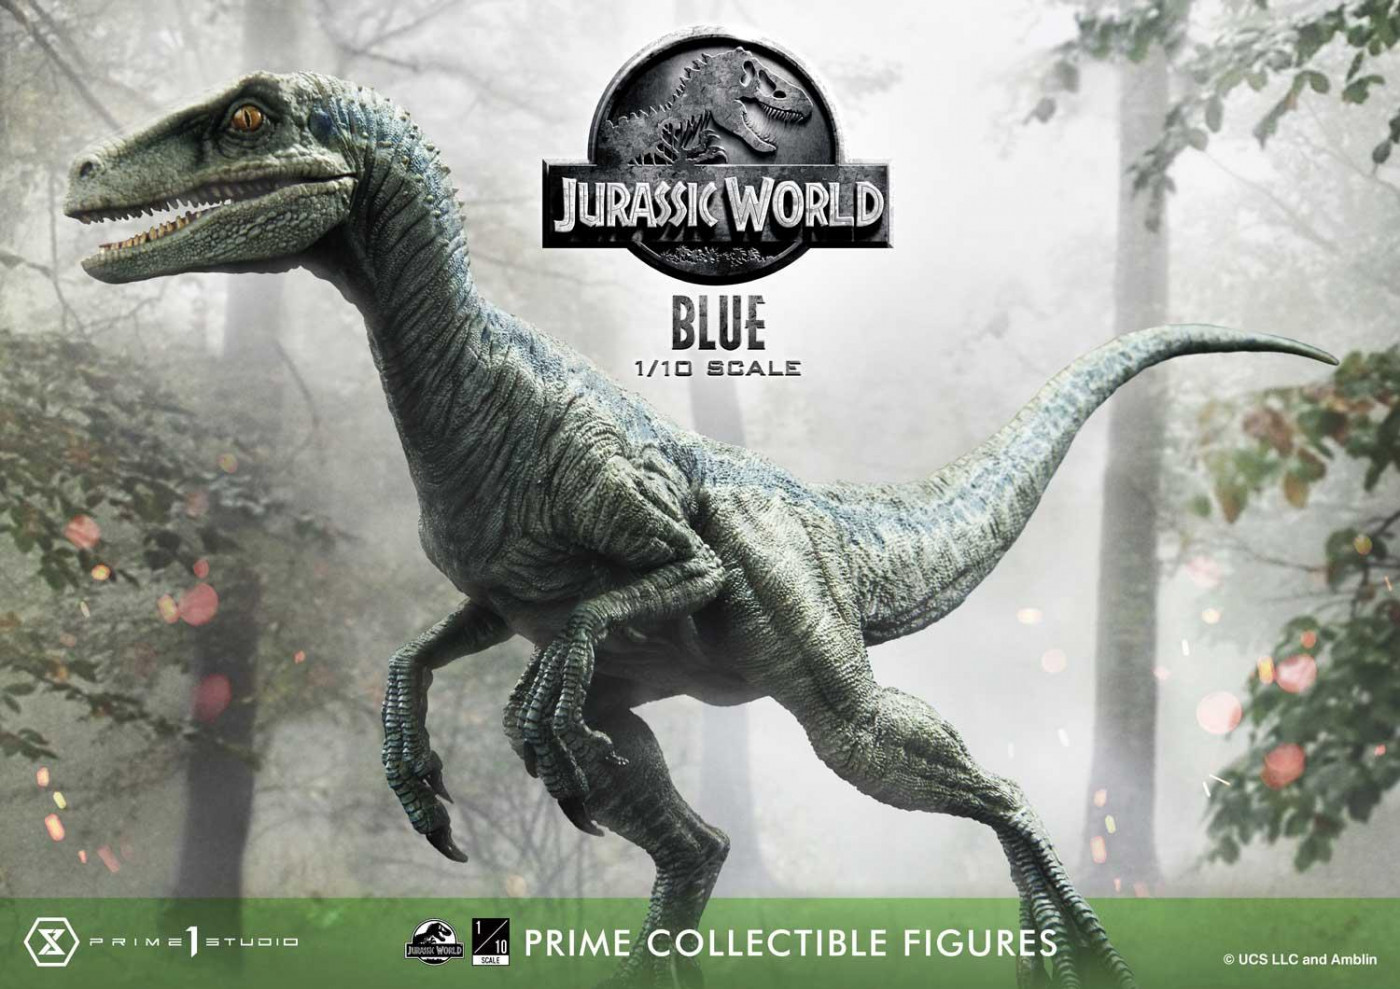 Prime Collectible Figures Jurassic World (Film) Blue Open Mouth